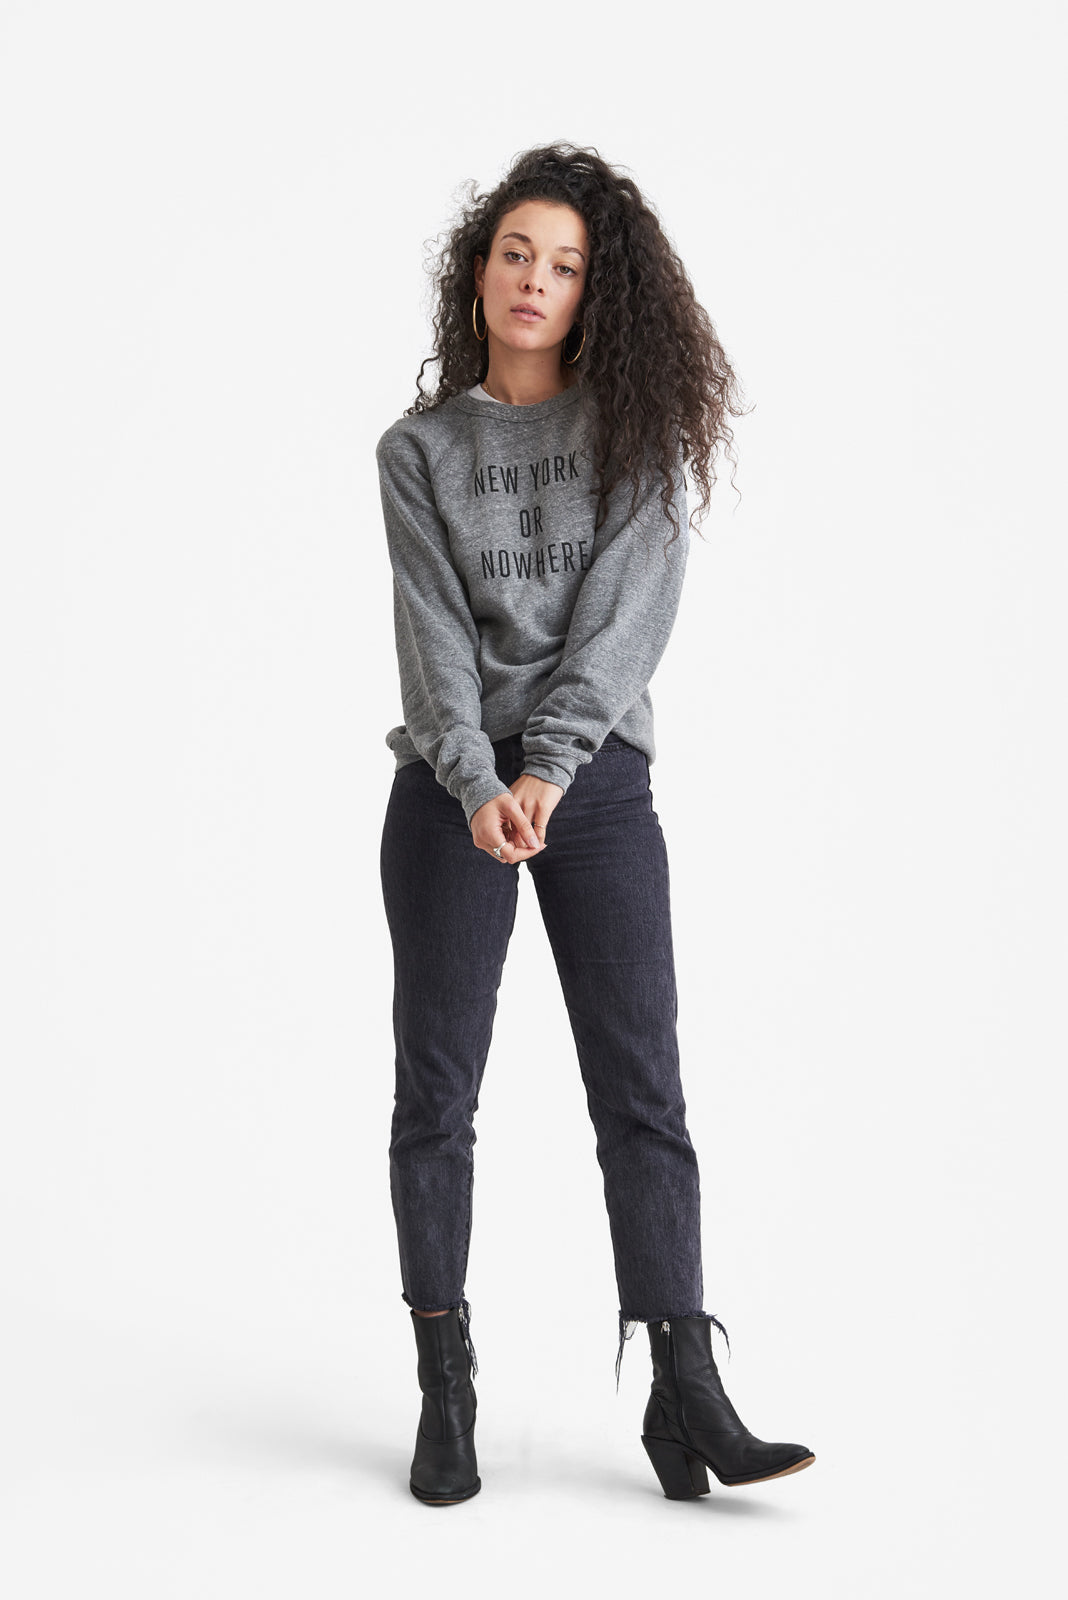 New York or Nowhere® Crew (Grey/Black)